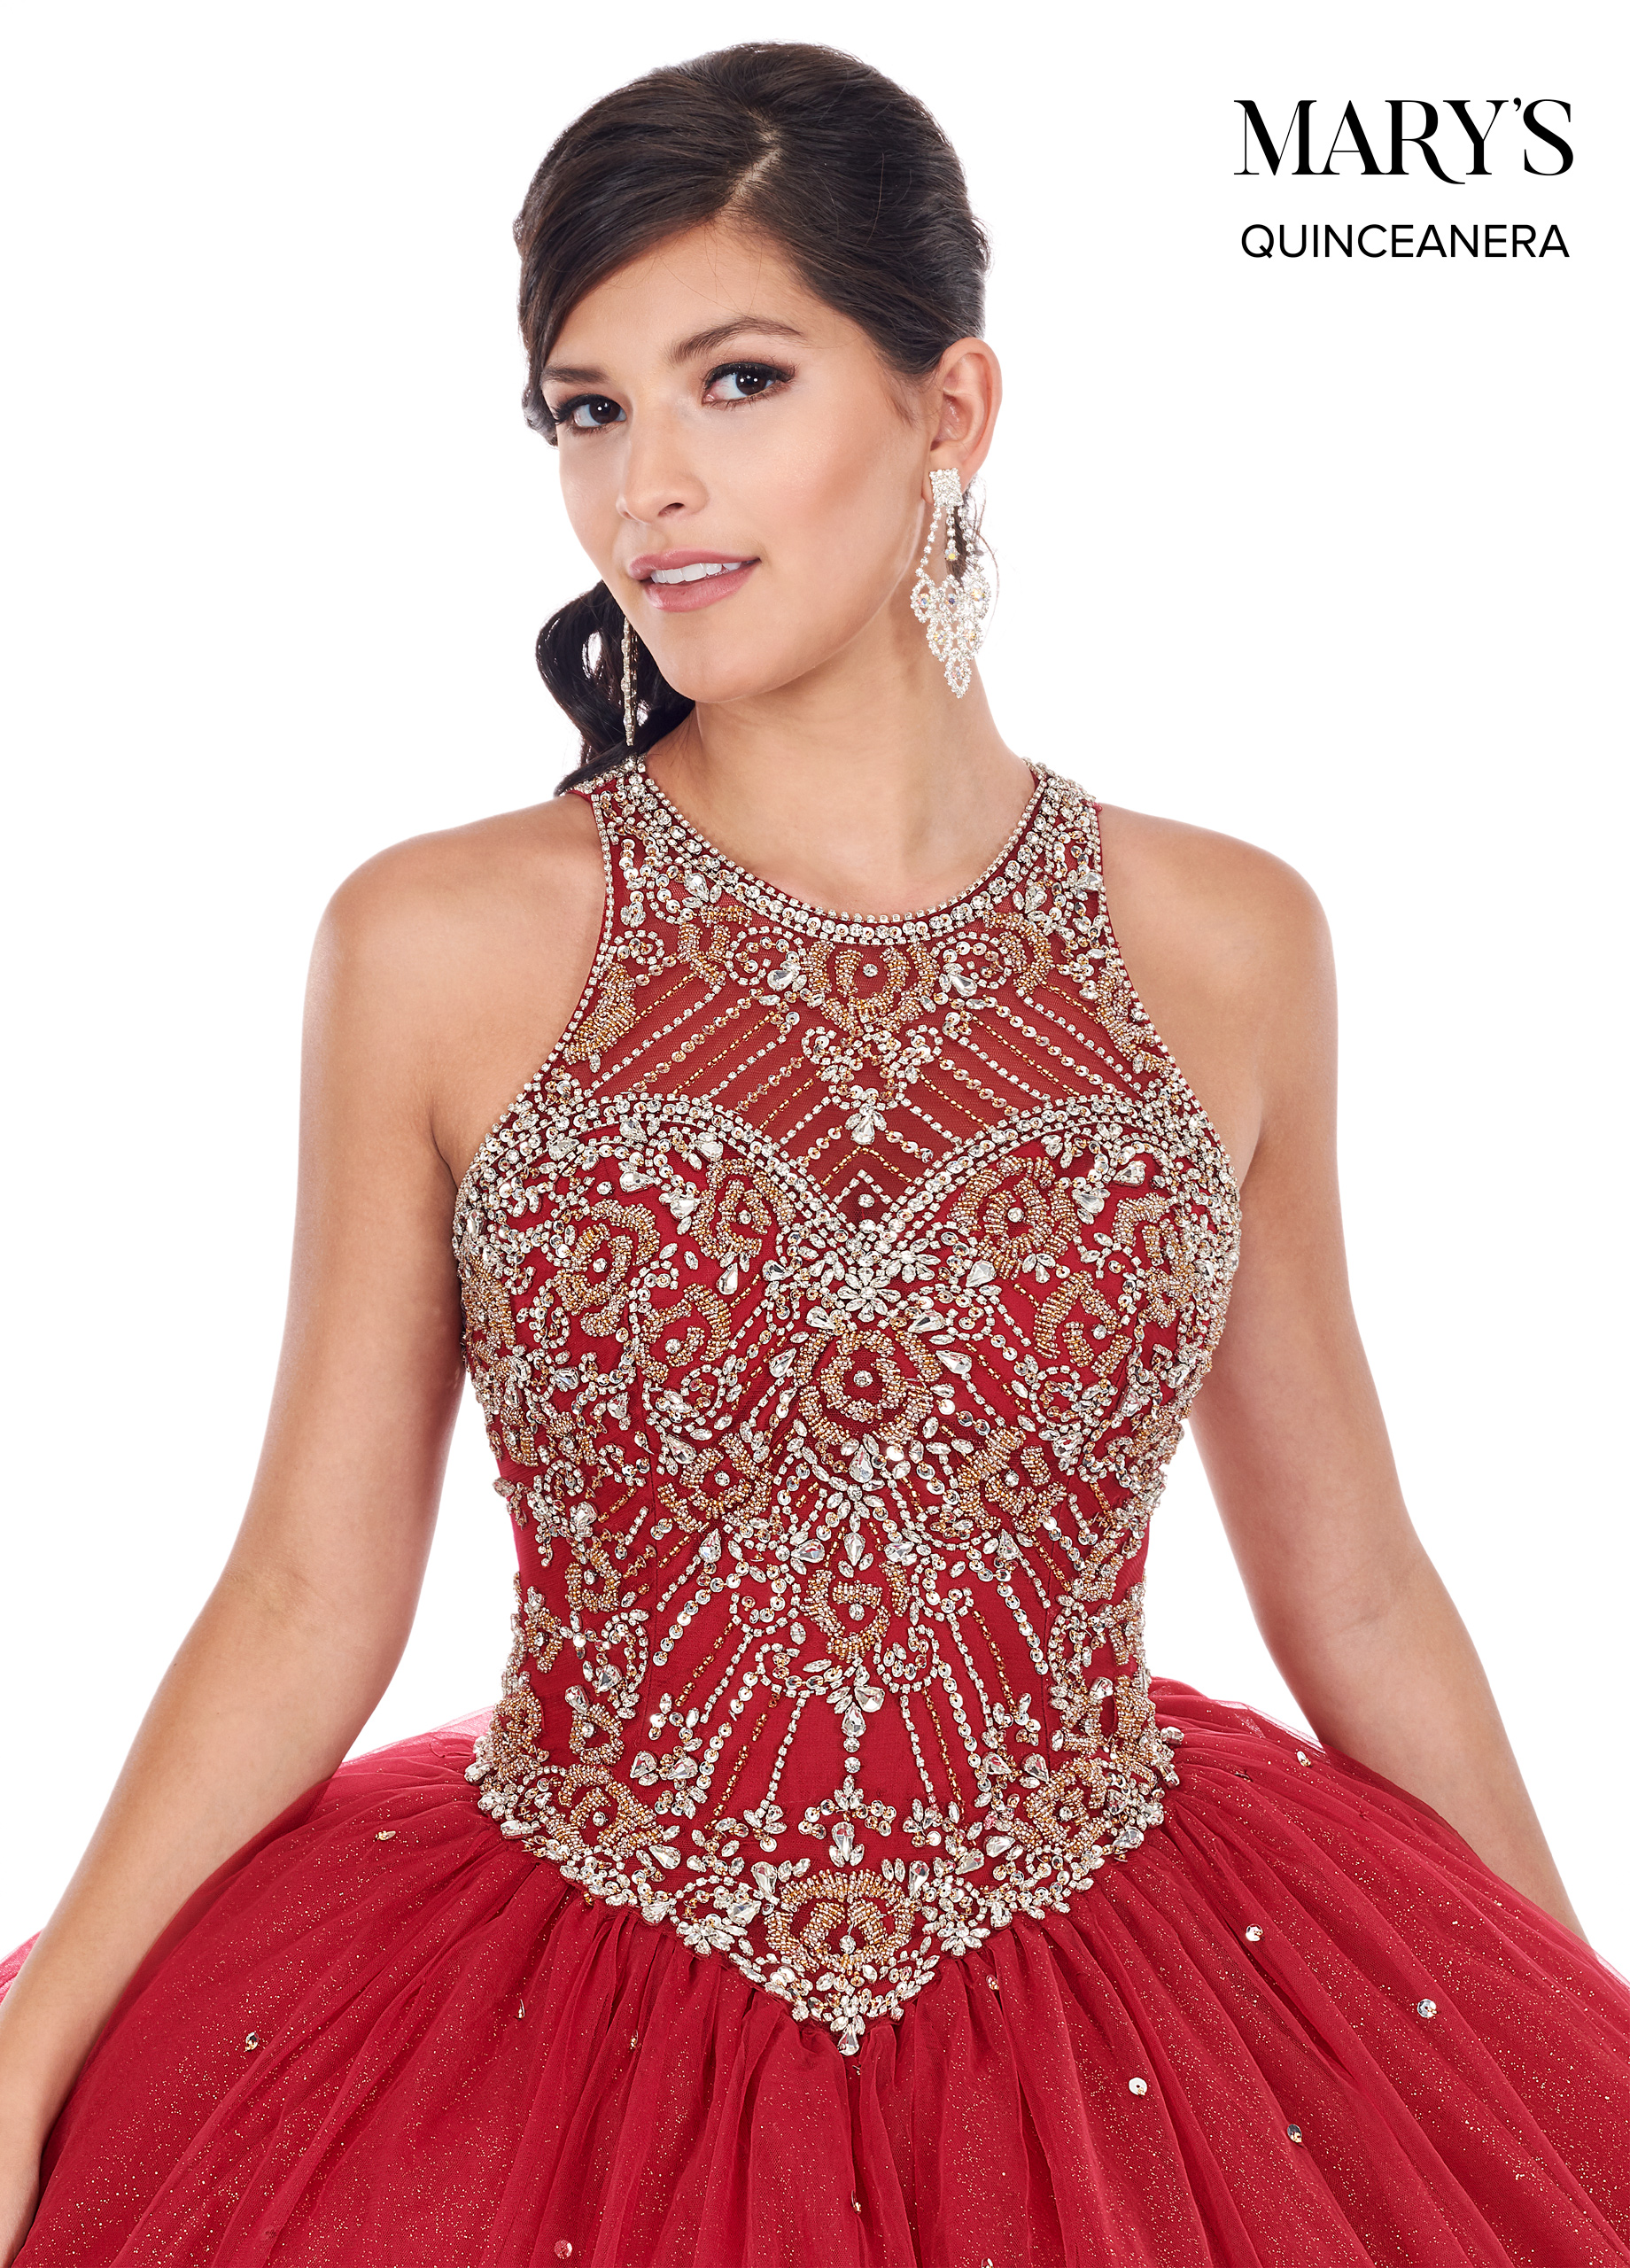 Marys Quinceanera Dresses | Mary's Quinceanera | Style - MQ1044